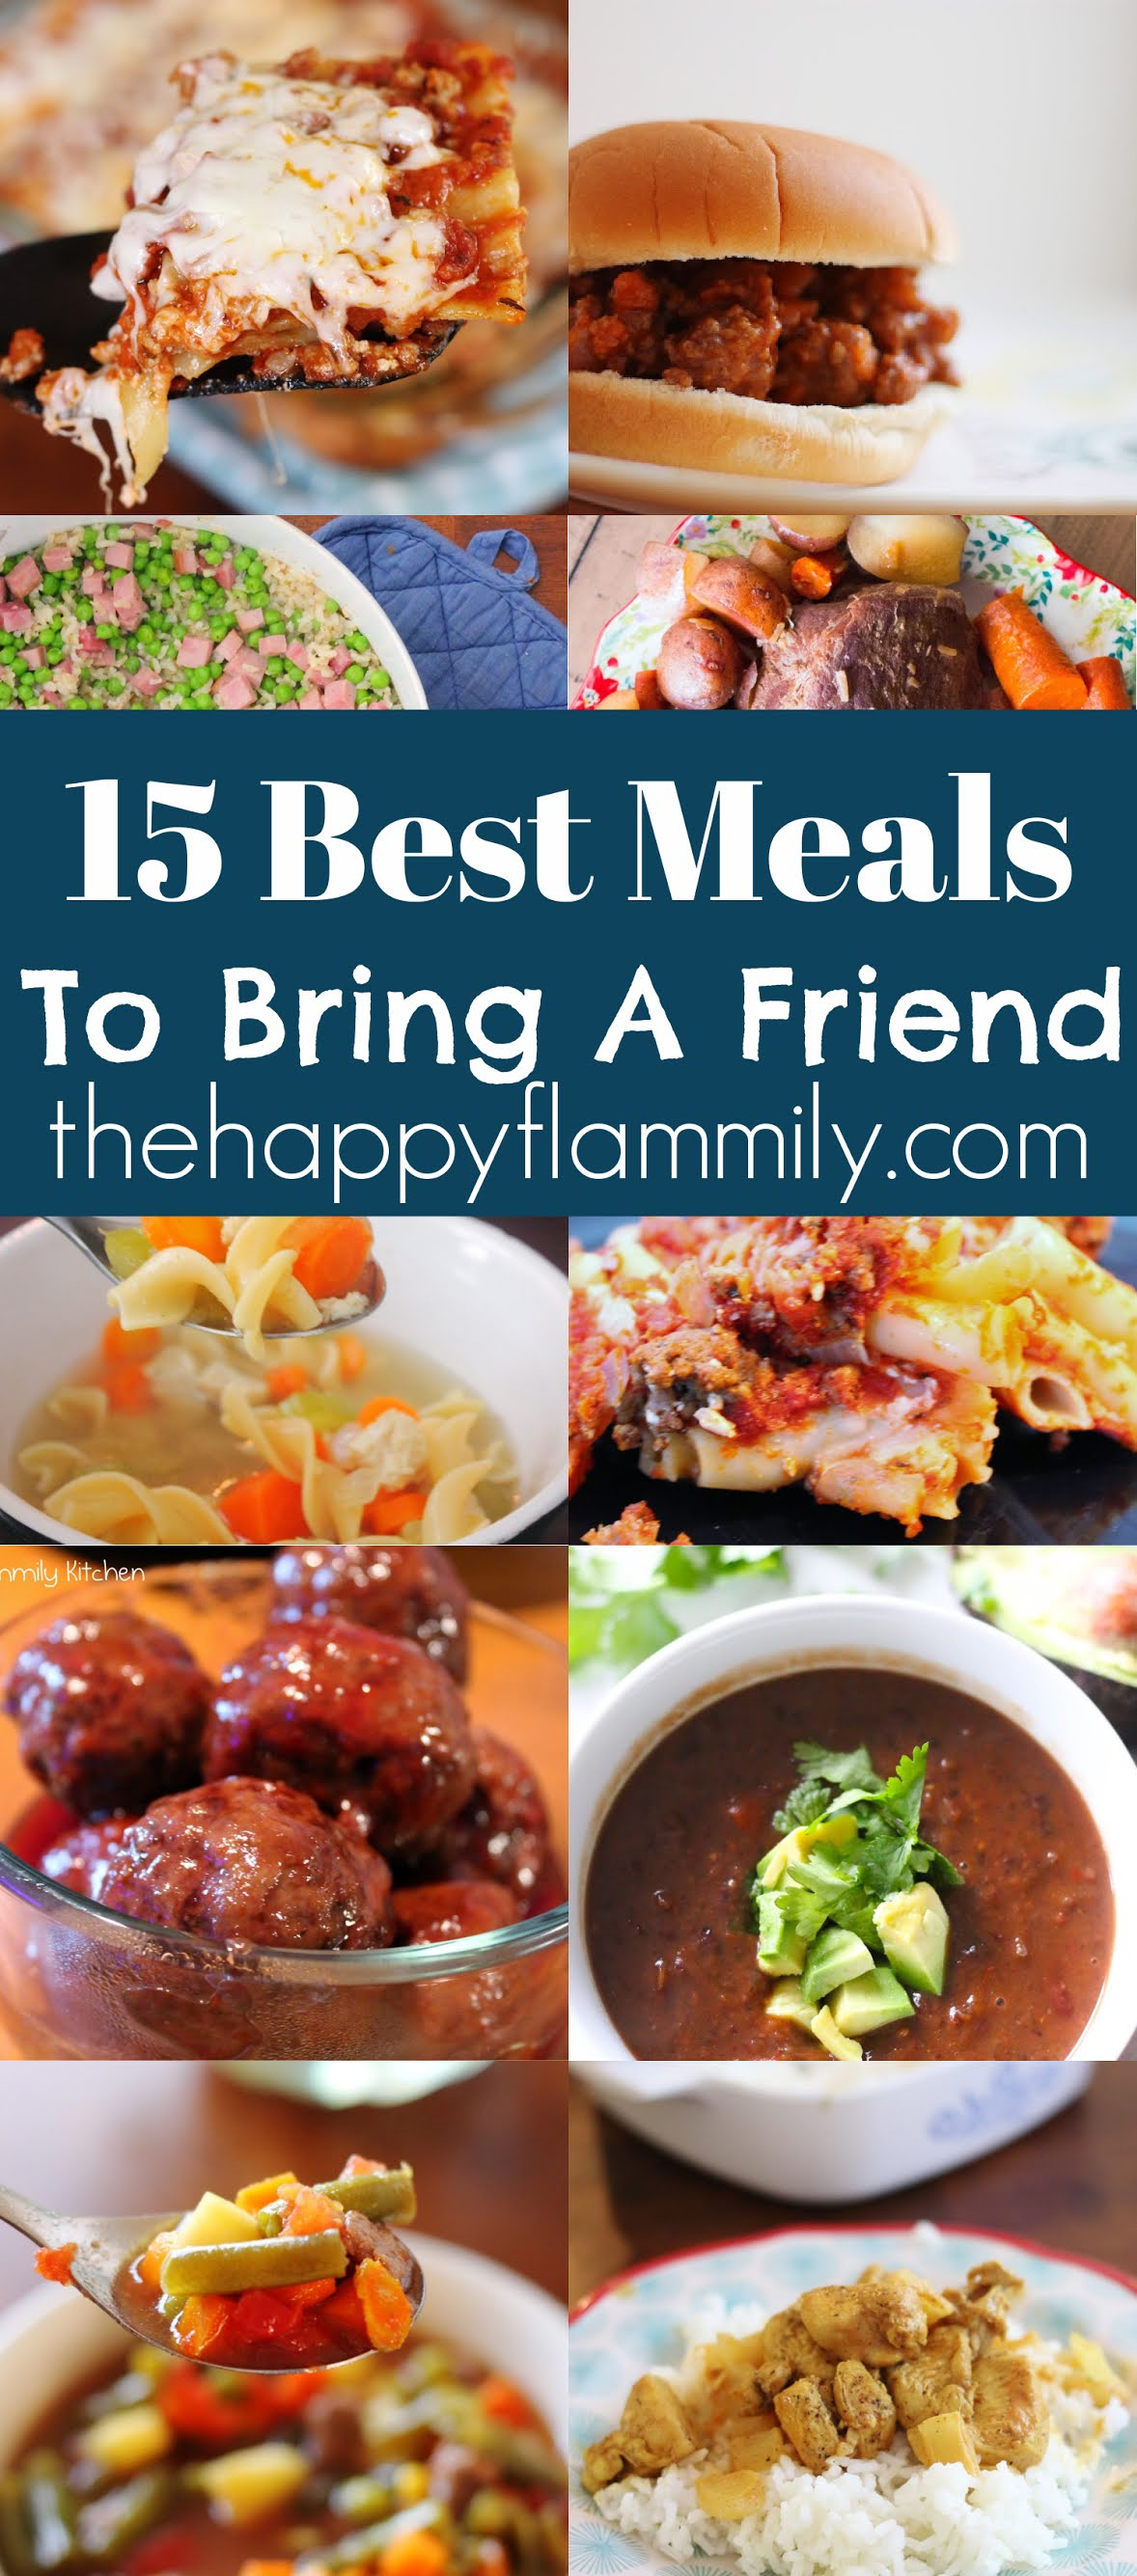 15 best meals to take to a friend. Best meals to bring someone when they have a baby. Easy meals to make for friends. Easy meals to make when you have people over for dinner. Best meals for serving guests. #dinner #Meals #family #service #bonding #friends